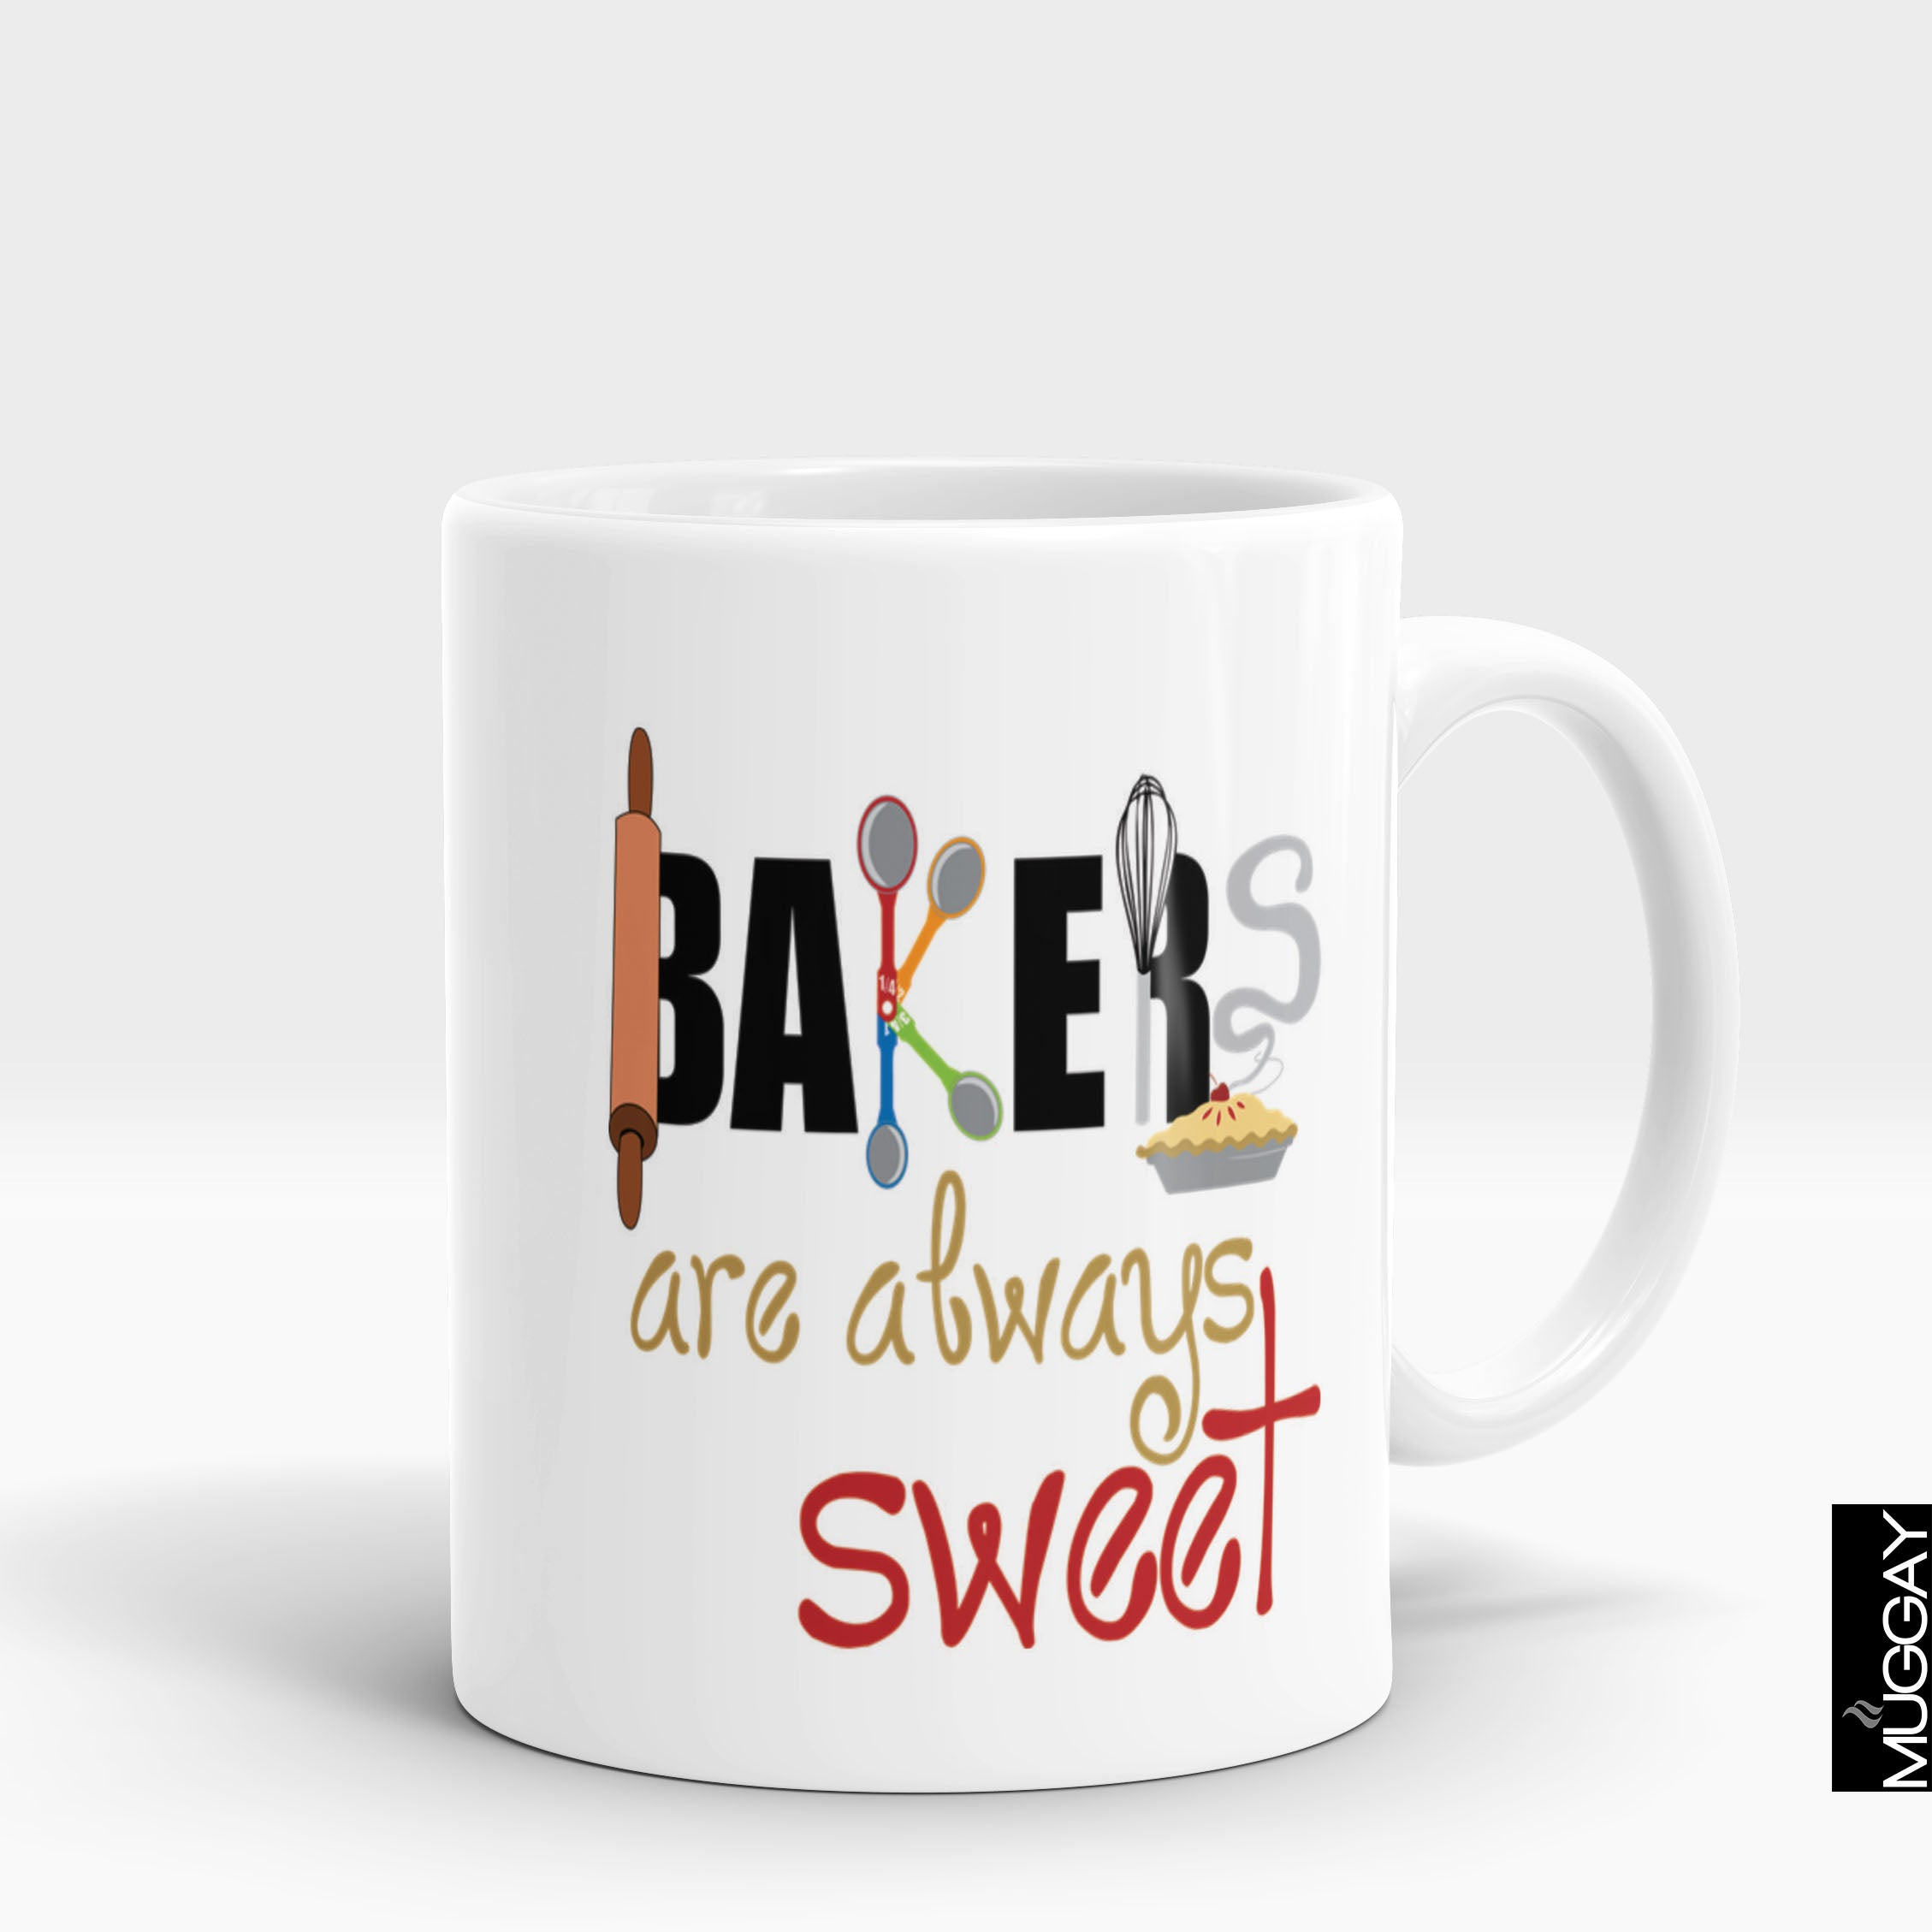 Baking Mug - bkr8 - Muggay.com - Mugs - Printing shop - truck Art mugs - Mug printing - Customized printing - Digital printing - Muggay